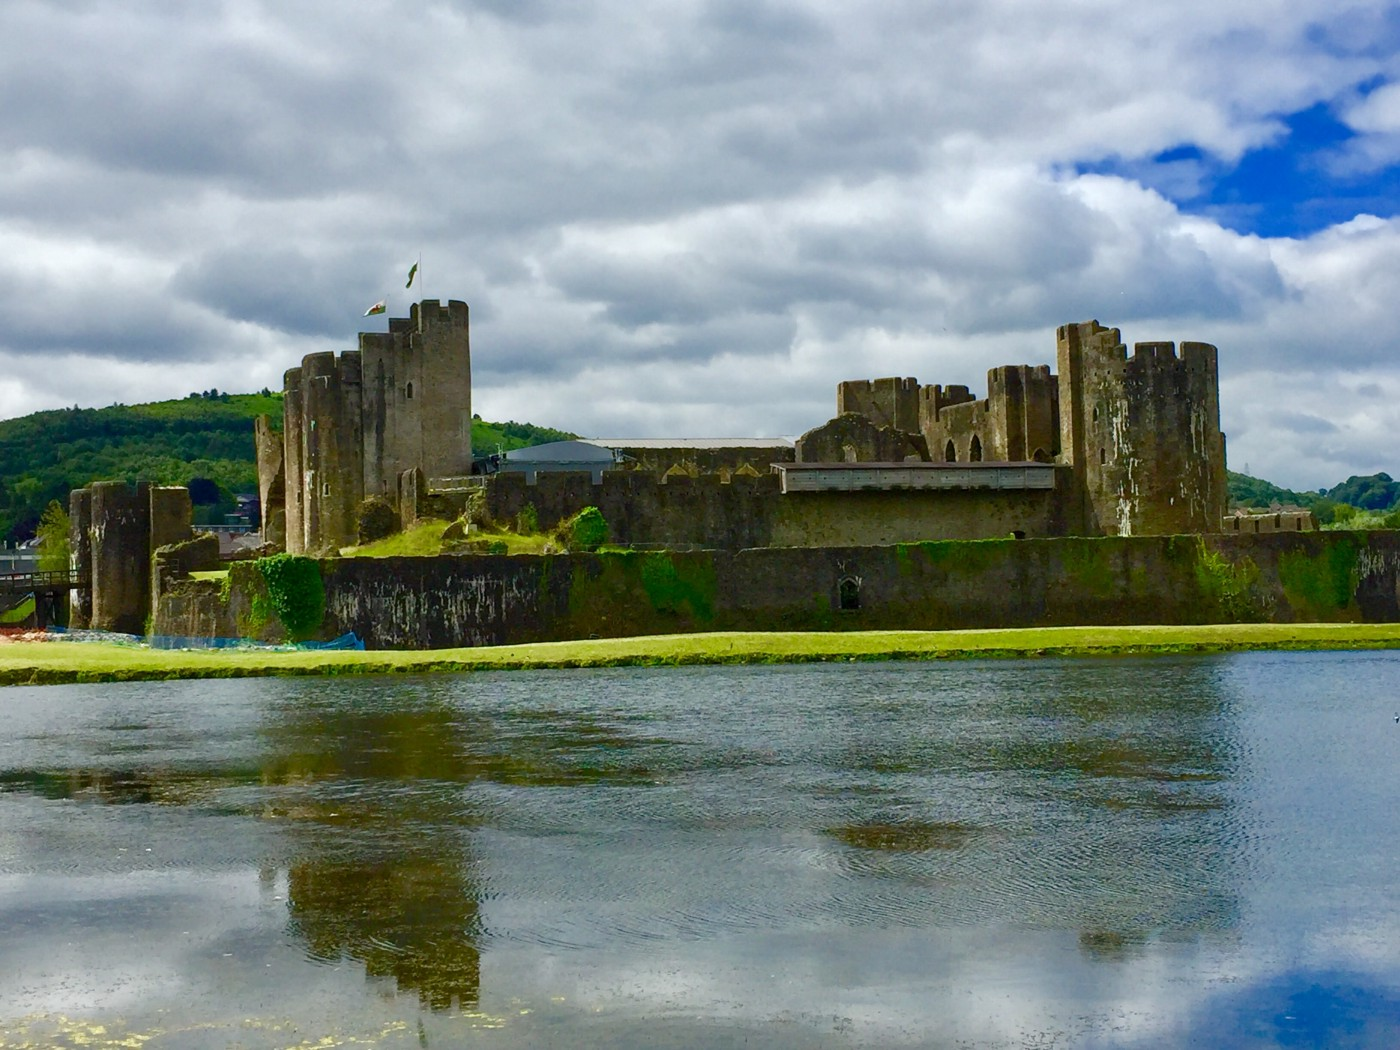 A castle with a very wide moat